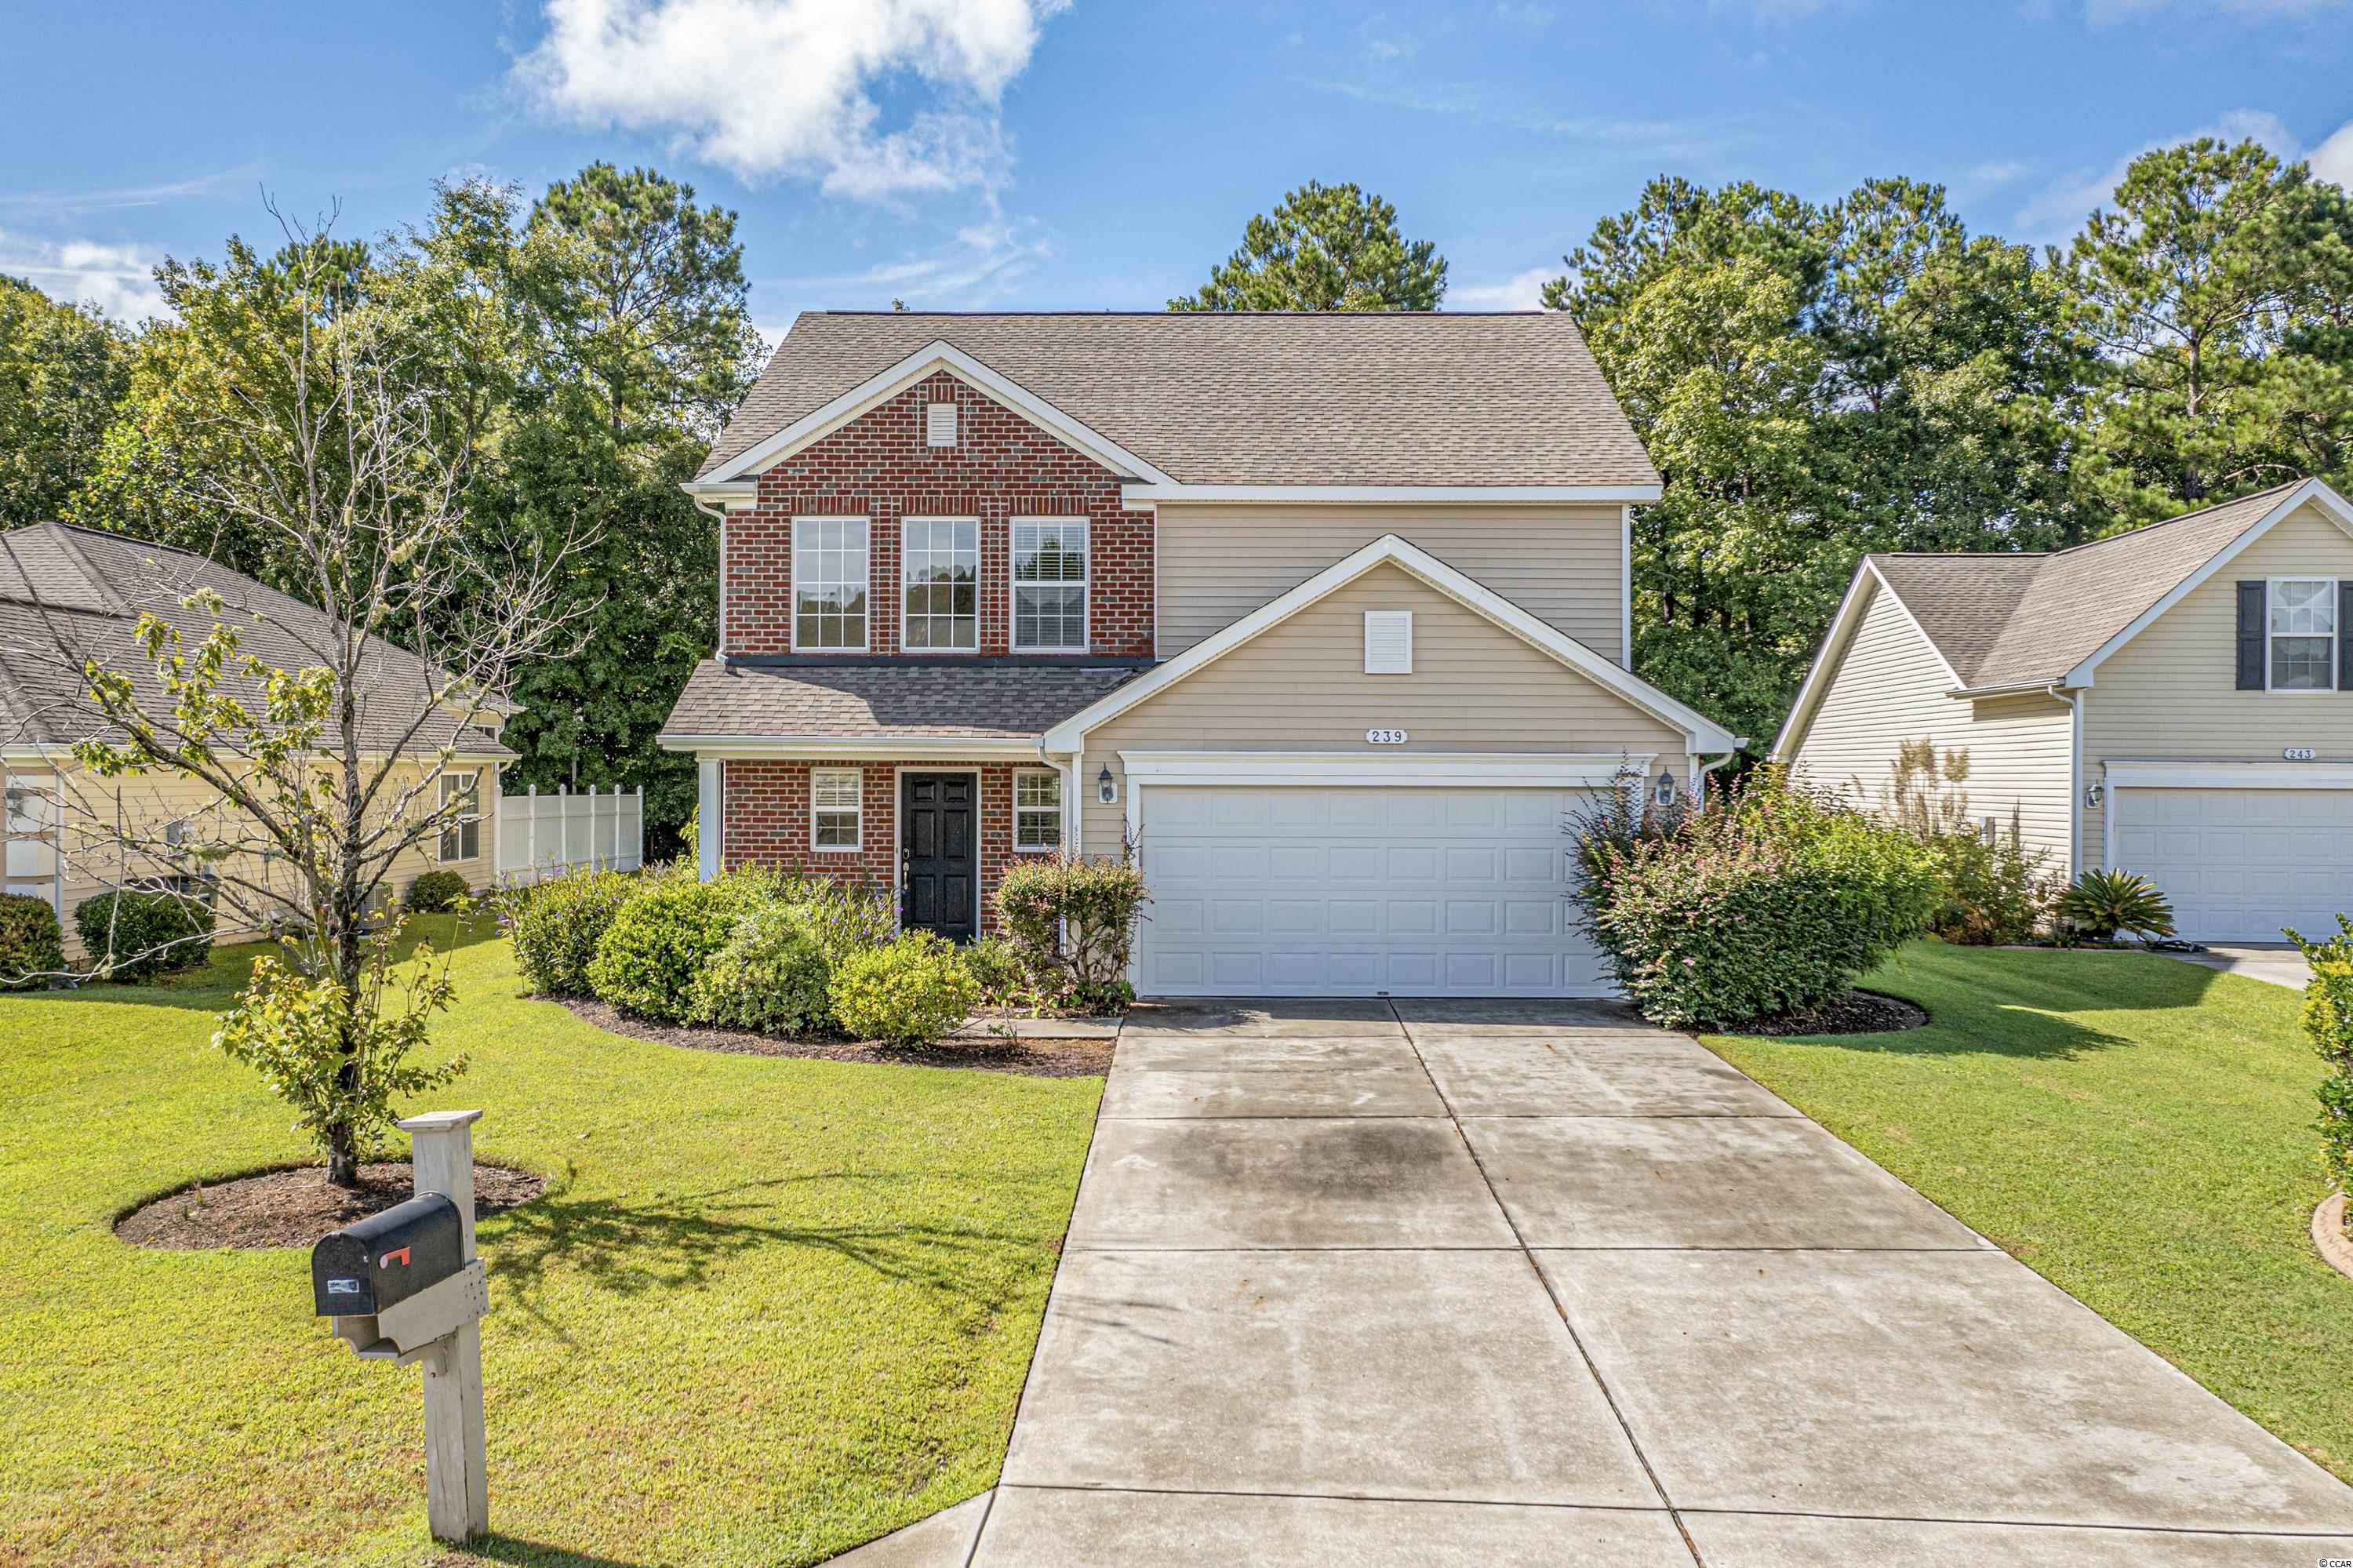 A beautiful and well maintained 4 bedrooms/ 2 full baths and 1 half bath (powder room) at the prestigious community of International Club - The Meadows . Enjoy the open floor plan concept, beautiful flooring and great features. The foyer is leading to the main living area.  The large windows create a great indoor/ outdoor flow and allow plenty of natural light. The large kitchen offers granite counter tops, plenty of cabinets and counter space, a pantry and a kitchen nook. The kitchen  is open to both living room and dinning room and is great for entertaining.  Great master suite offers a master bath with double sink vanity, a walk in shower and a walk in closet. The home offers three additional large bedrooms with spacious closets.  The attached 2 car garage and extra long driveway will accommodate all of your parking needs. The home is built on an amazing private lot backing up to the woods. The home is located on a very quiet  cul-de-sac street. The lawn & landscape are very well kept.  This exceptional home is located in the Horry County St. James School District and in a beautiful golf community at International Club of Murrells Inlet. The community offers residents and their guest a clubhouse facility with fitness center, a large swimming pool with a very spacious pool deck, playground area. The entire community is built around the International Club Golf Course. Only minutes to the Murrells Inlet Marsh walk, Huntington Beach State Park, Garden City Beaches and many other area attractions. Don't wait on this one. Call for a showing appointment.